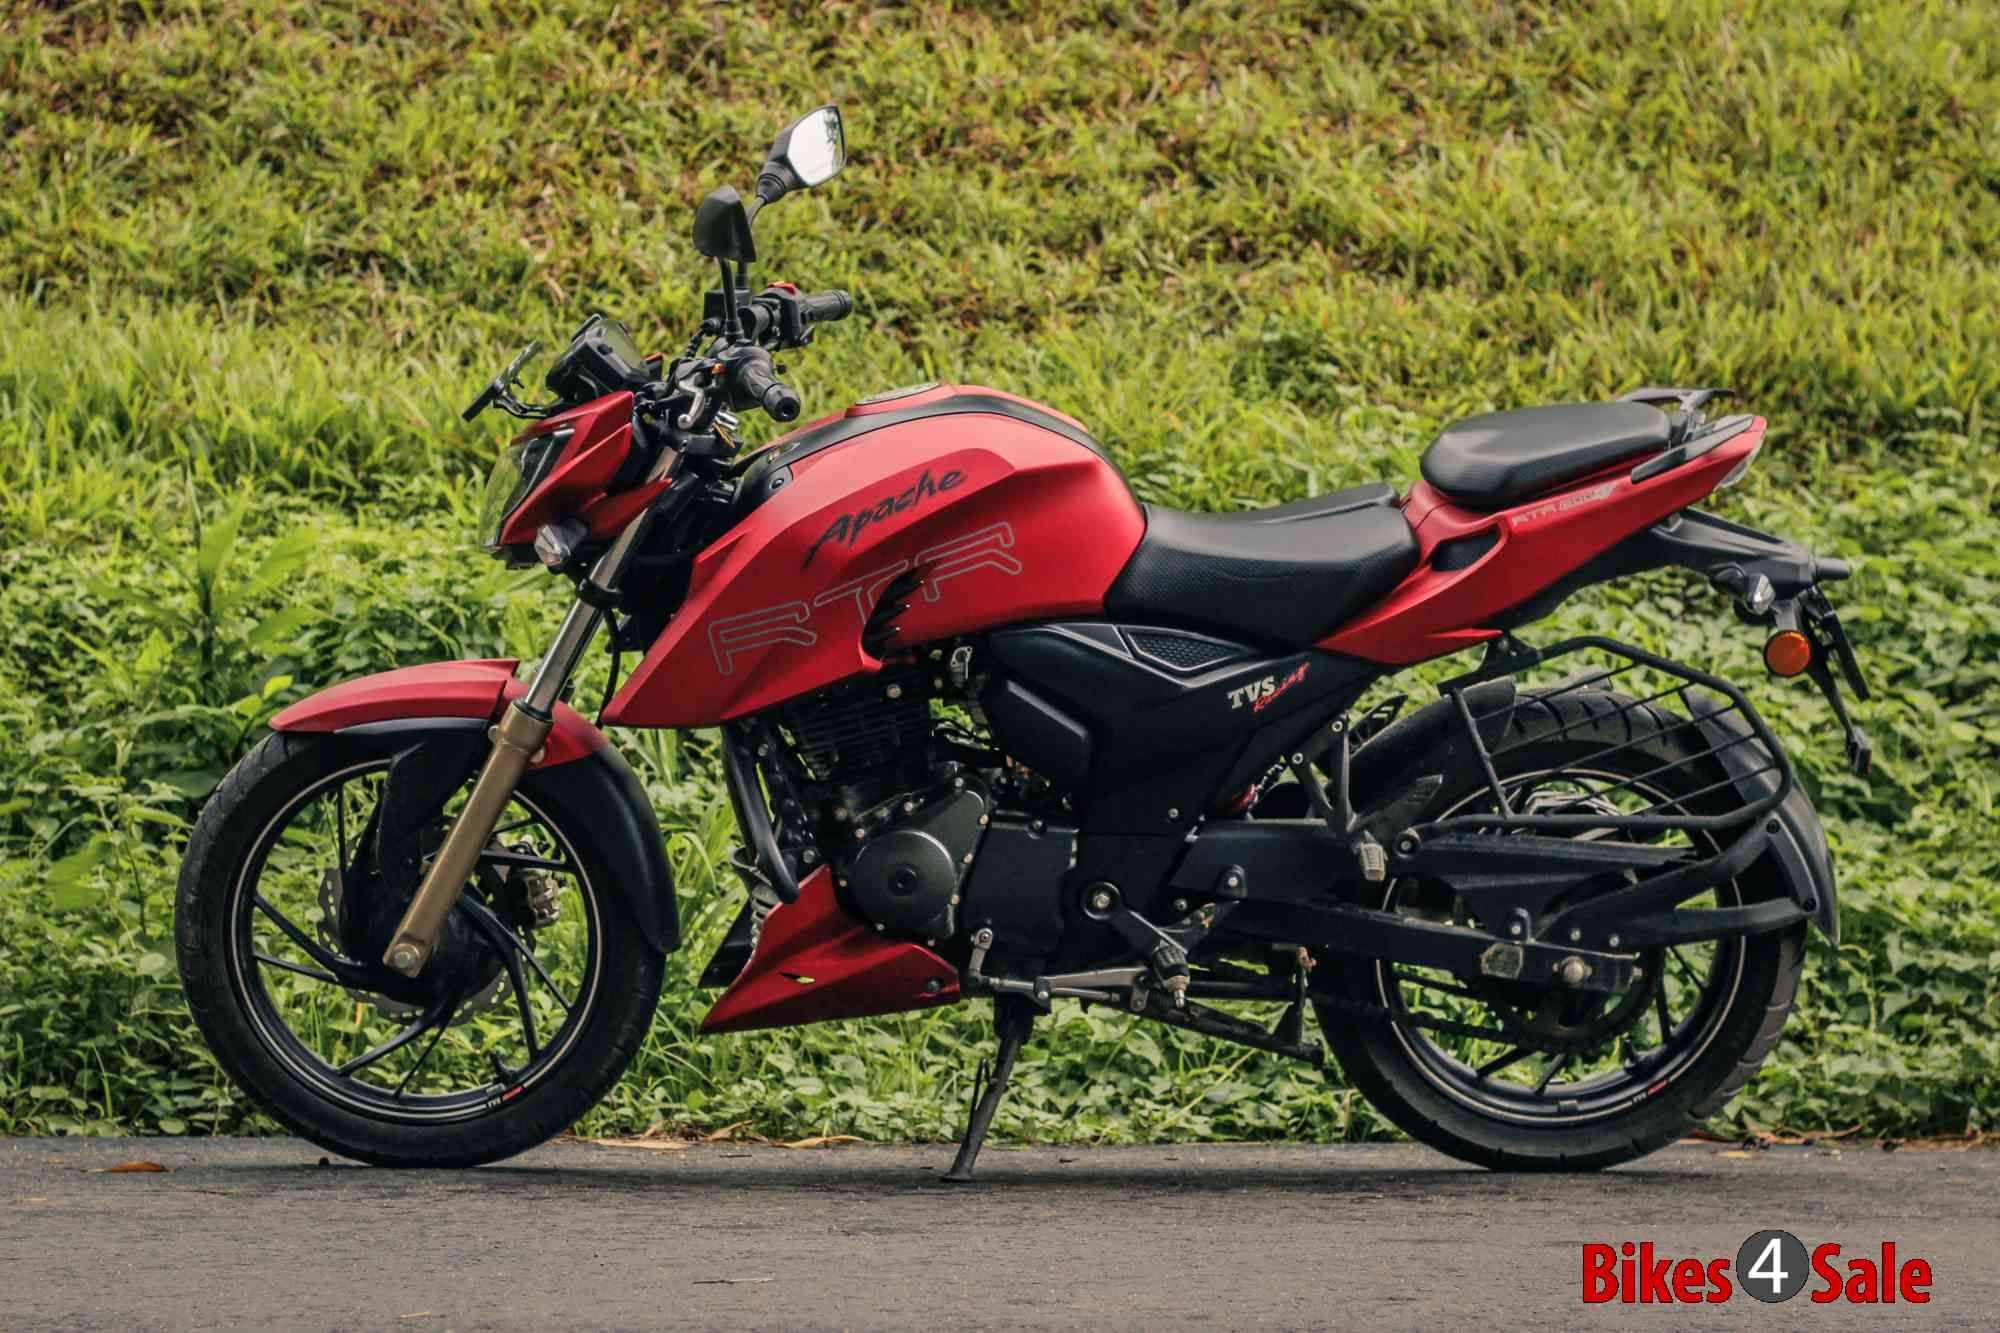 Pictures Of Tvs Apache Rtr 200 4v Motorcycle Photo 10 Download